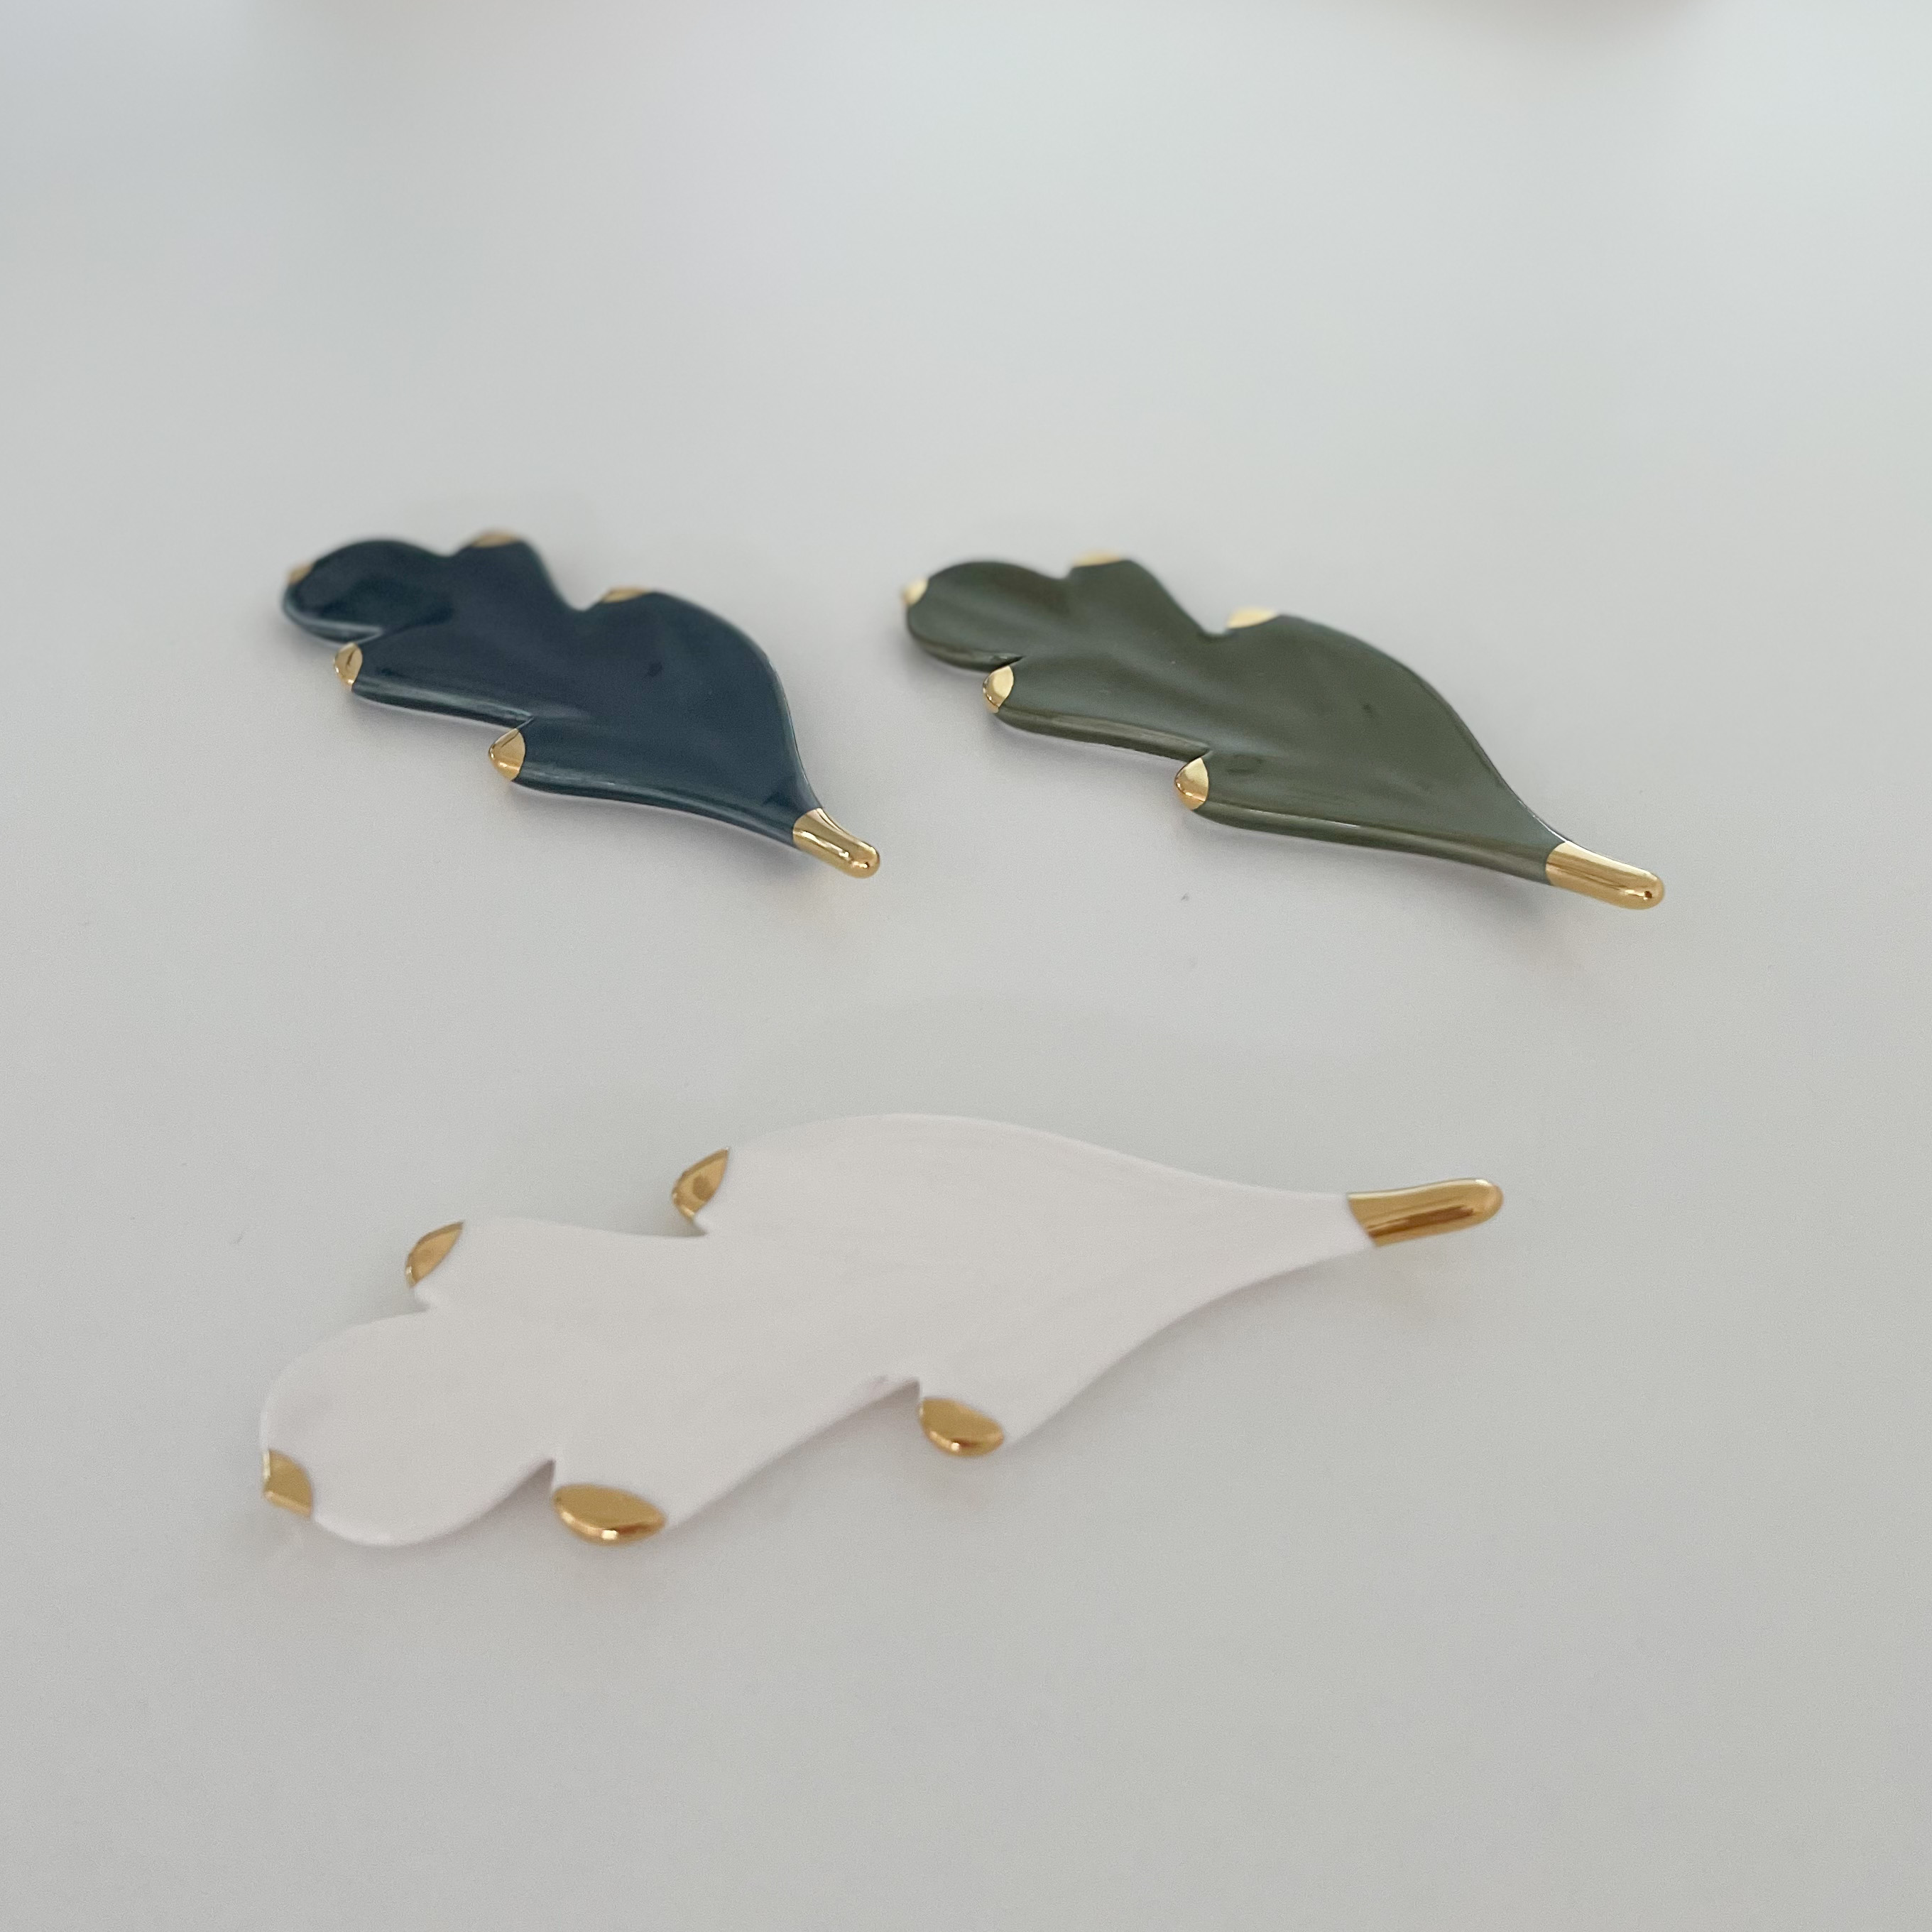 Botanic Chopstick Rest by Jung So Young f